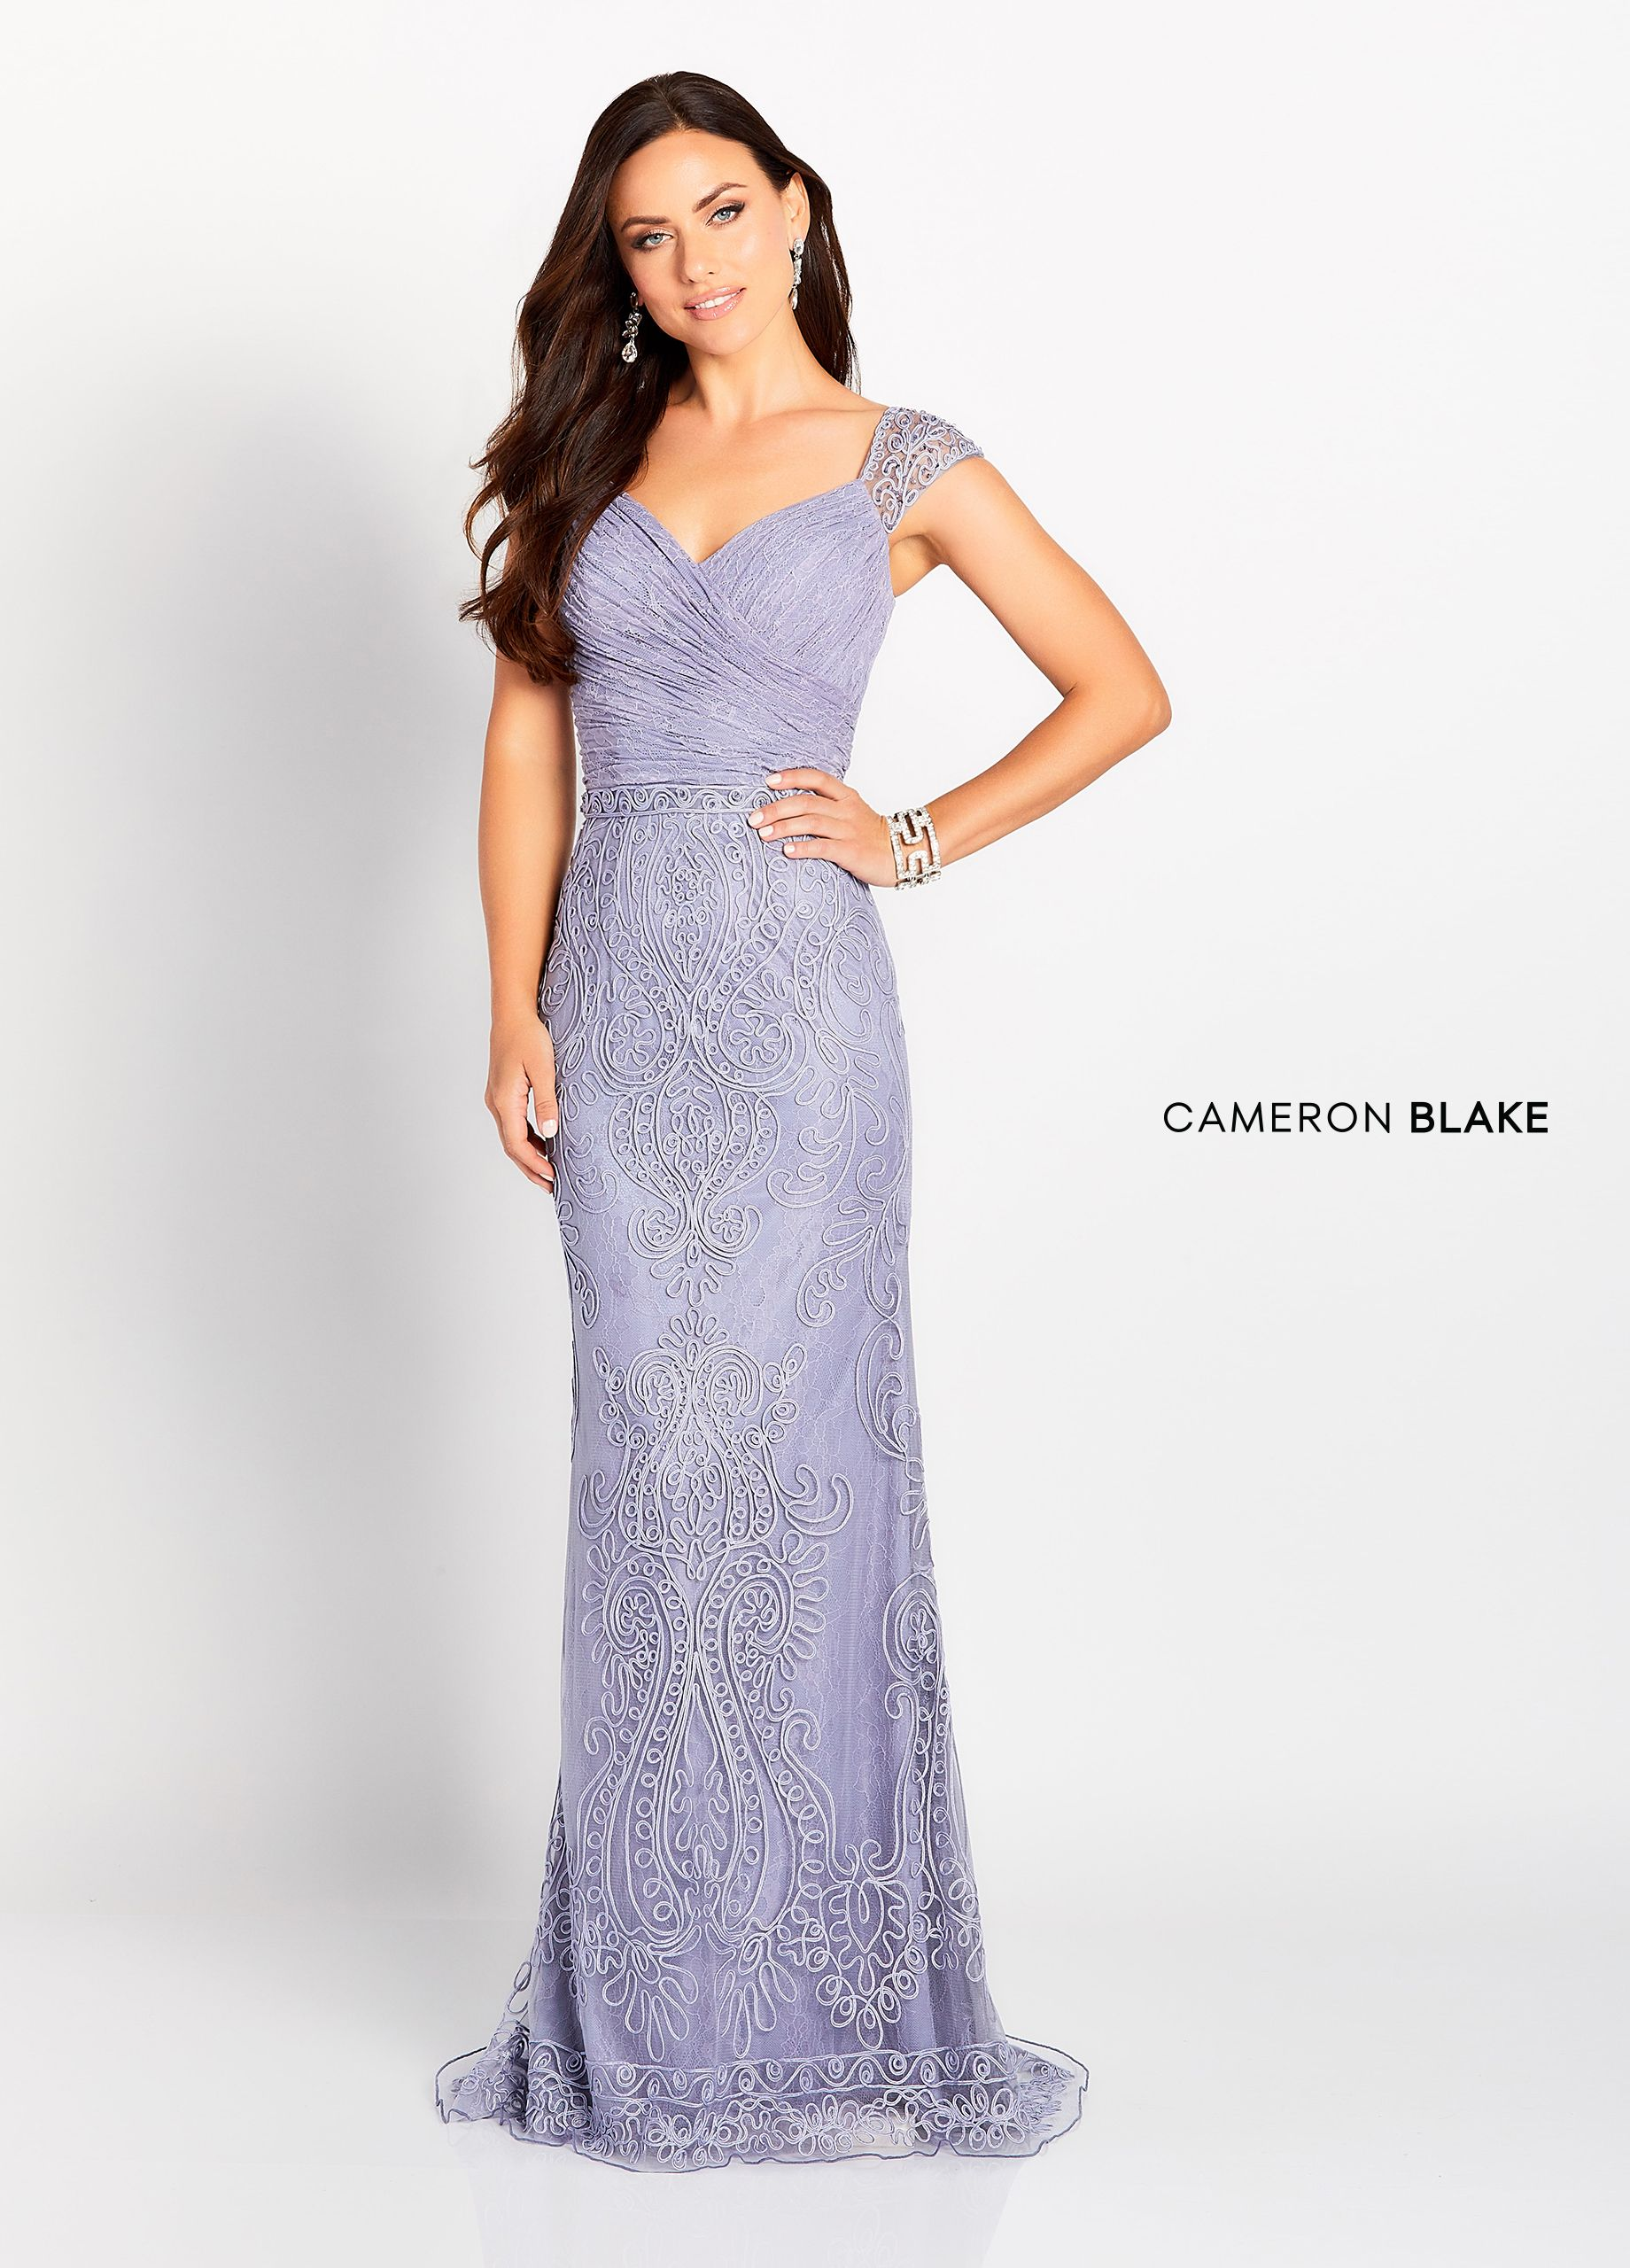 3a947605ee95 Cameron Blake 119643 - Cap sleeve allover lace and ribbon work fit and  flare gown, illusion ribbon work and beaded straps, sweetheart neckline and  v-back, ...